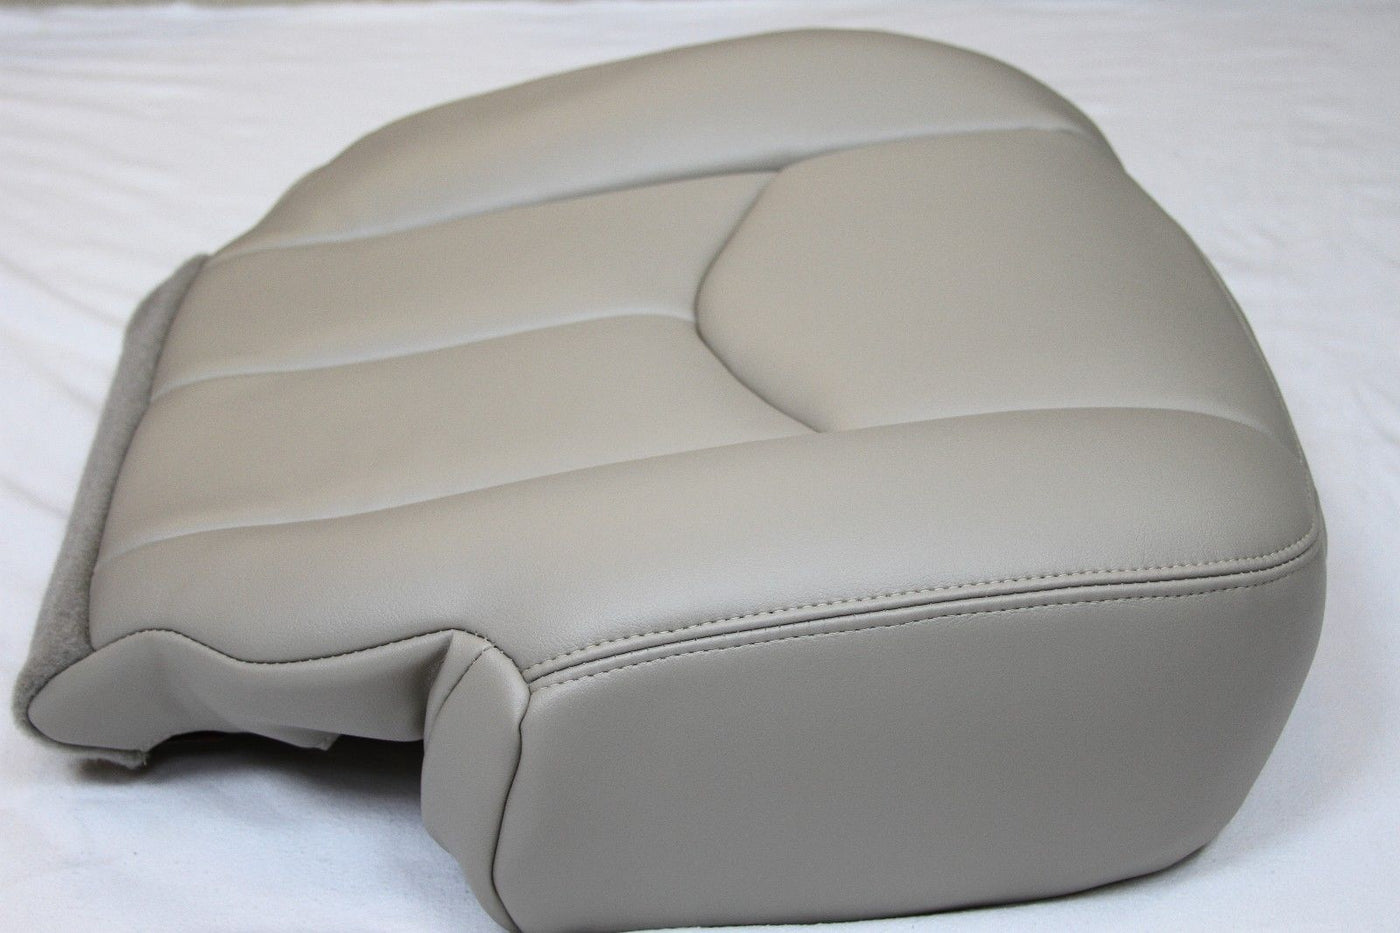 Magnificent 20003 To 2006 Gmc Yukon Seat Cover Replacement Light Tan Synthetic Leather Ibusinesslaw Wood Chair Design Ideas Ibusinesslaworg